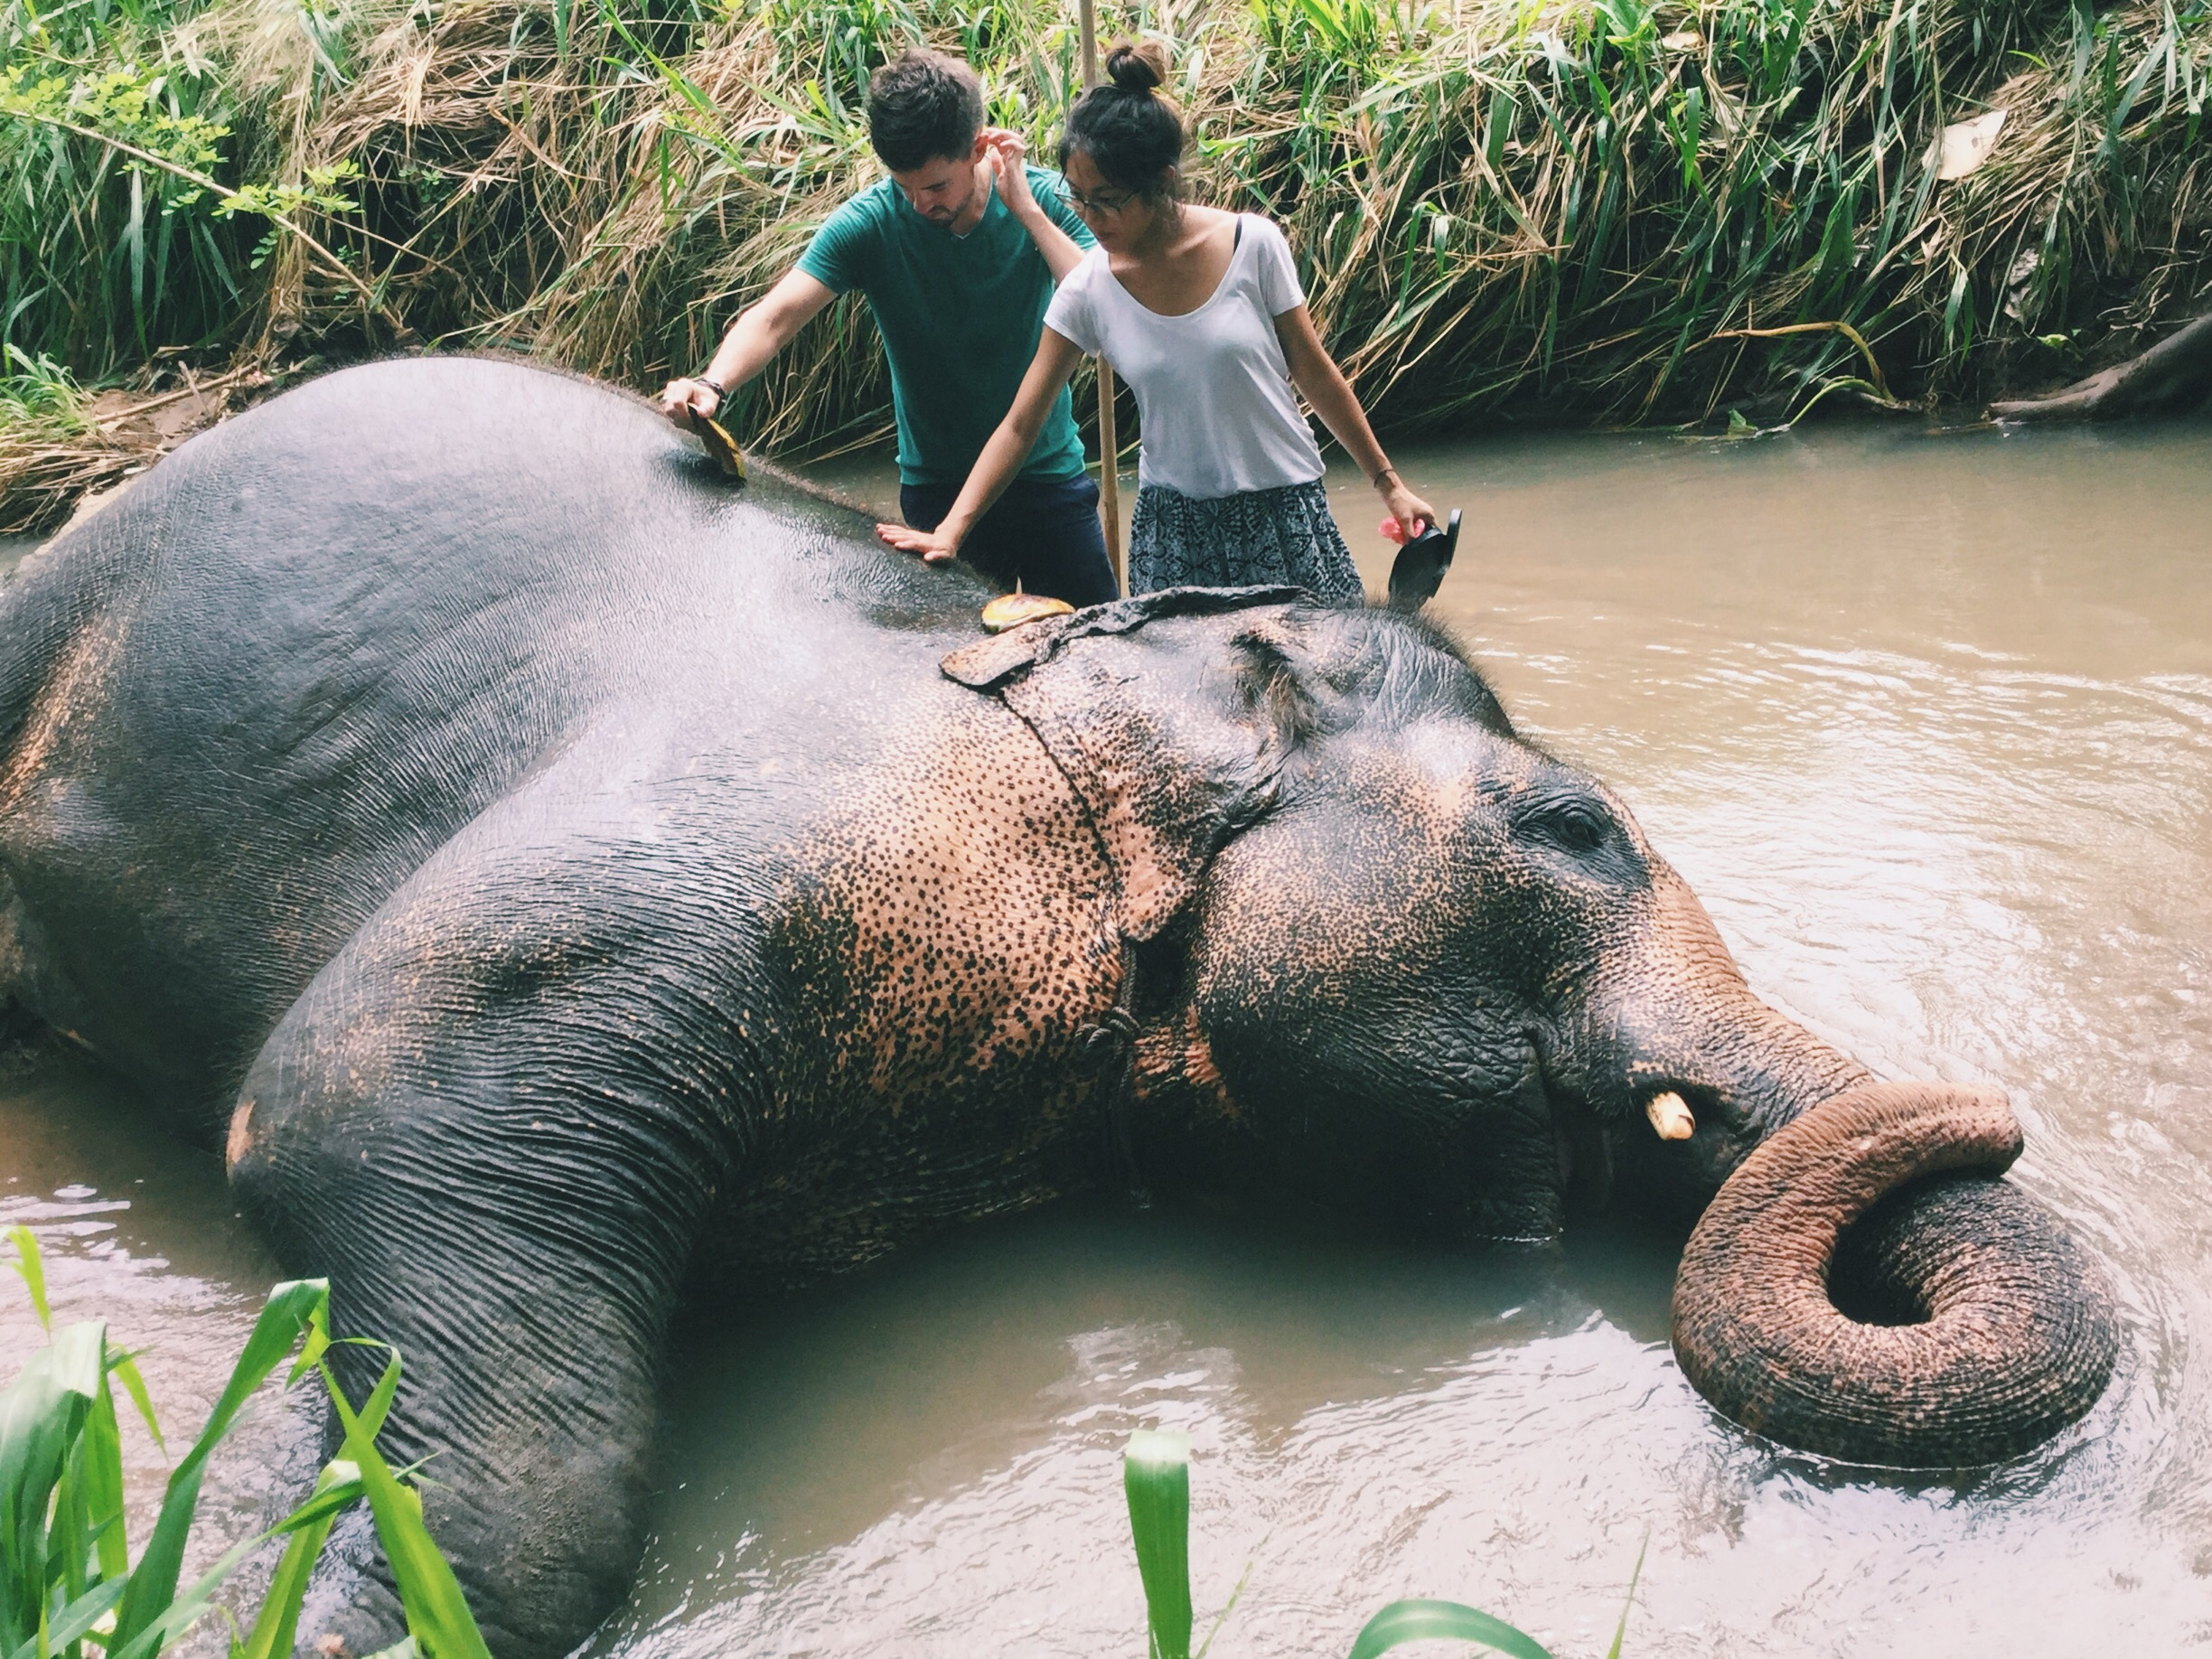 Washing Elephants in Sri Lanka